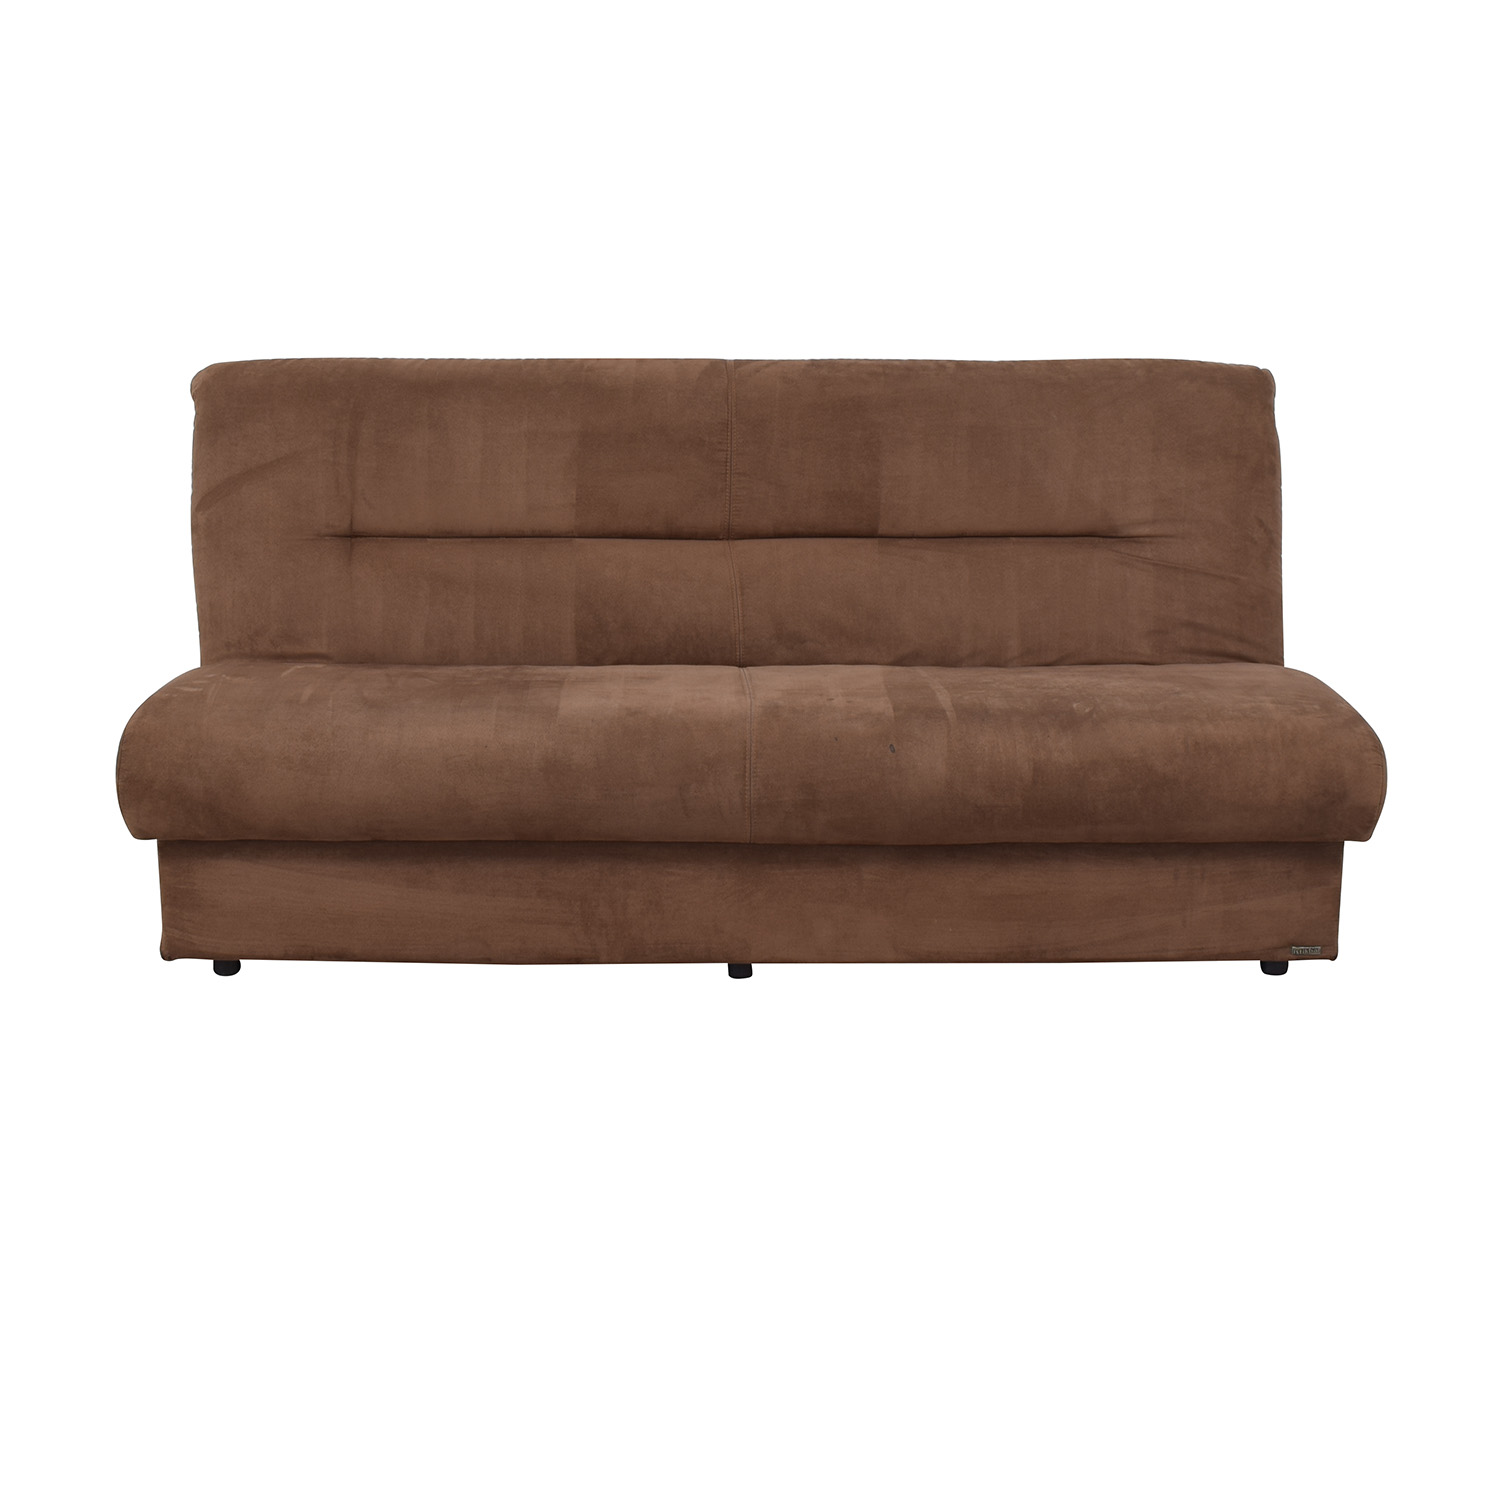 Istikbal Istikbal Furniture Regata Diego Convertible Full Sofa Bed coupon